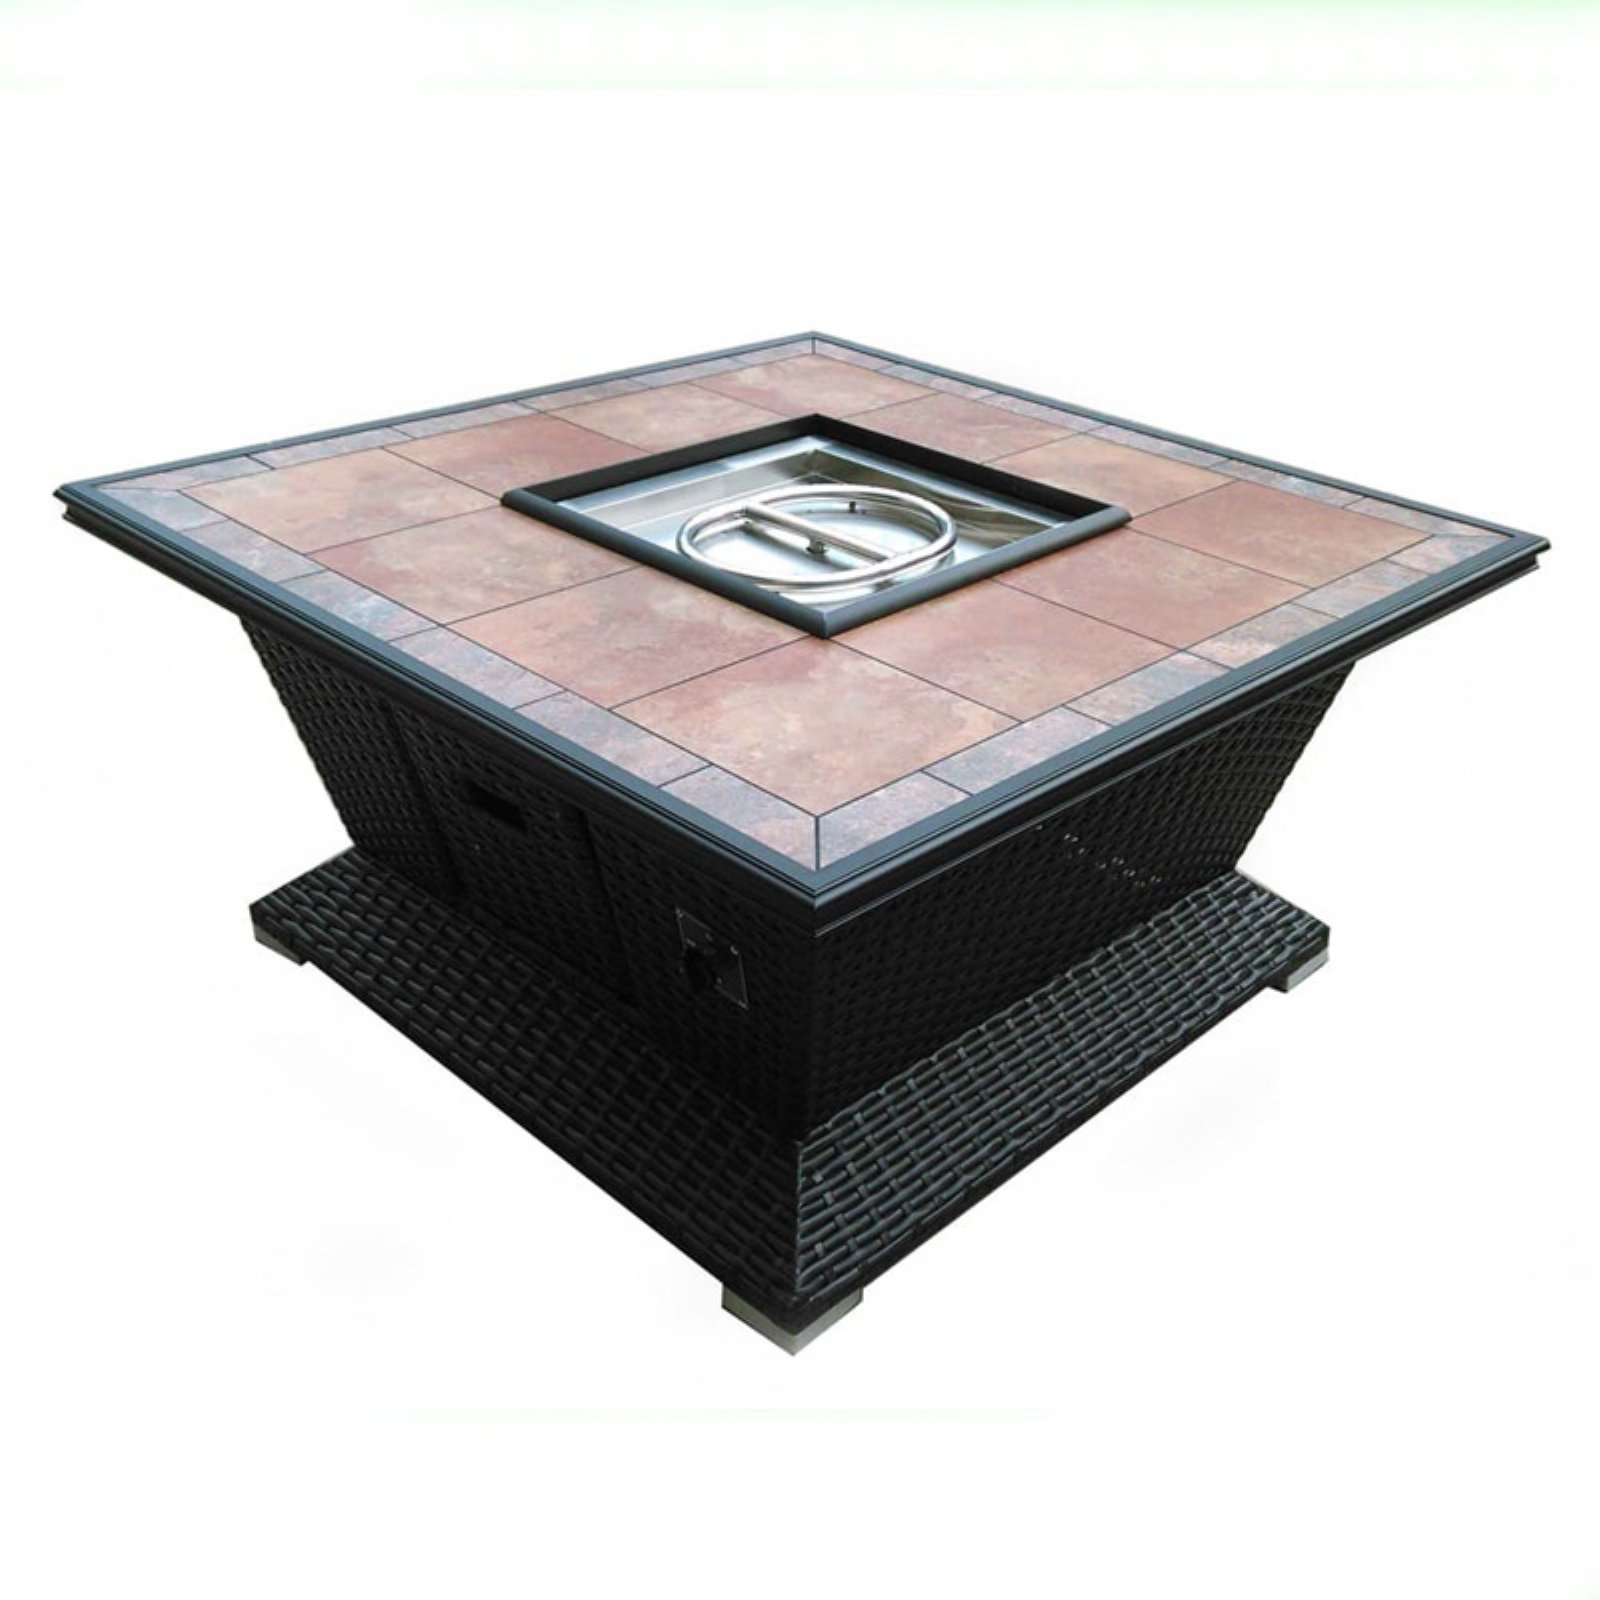 Tretco 48 in. Square Wicker Gas Fire Pit